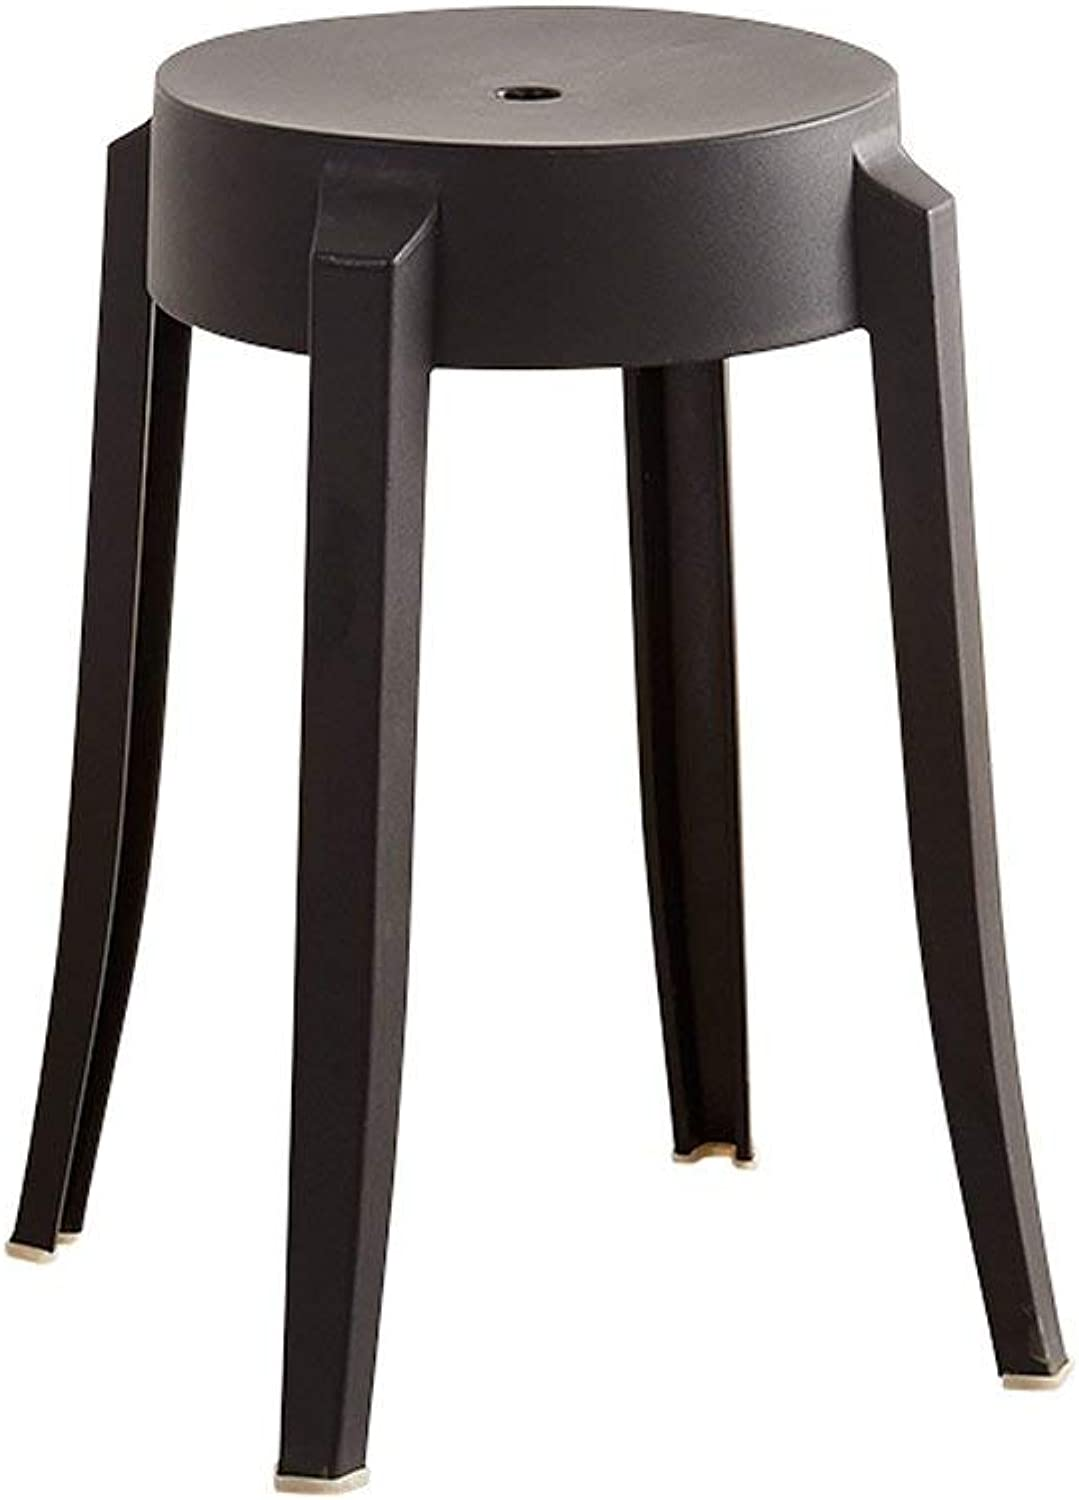 GJD Household Plastic Chair Thick Small Bench Restaurant Simple Dining Table Stool - Small Stool (color   A)